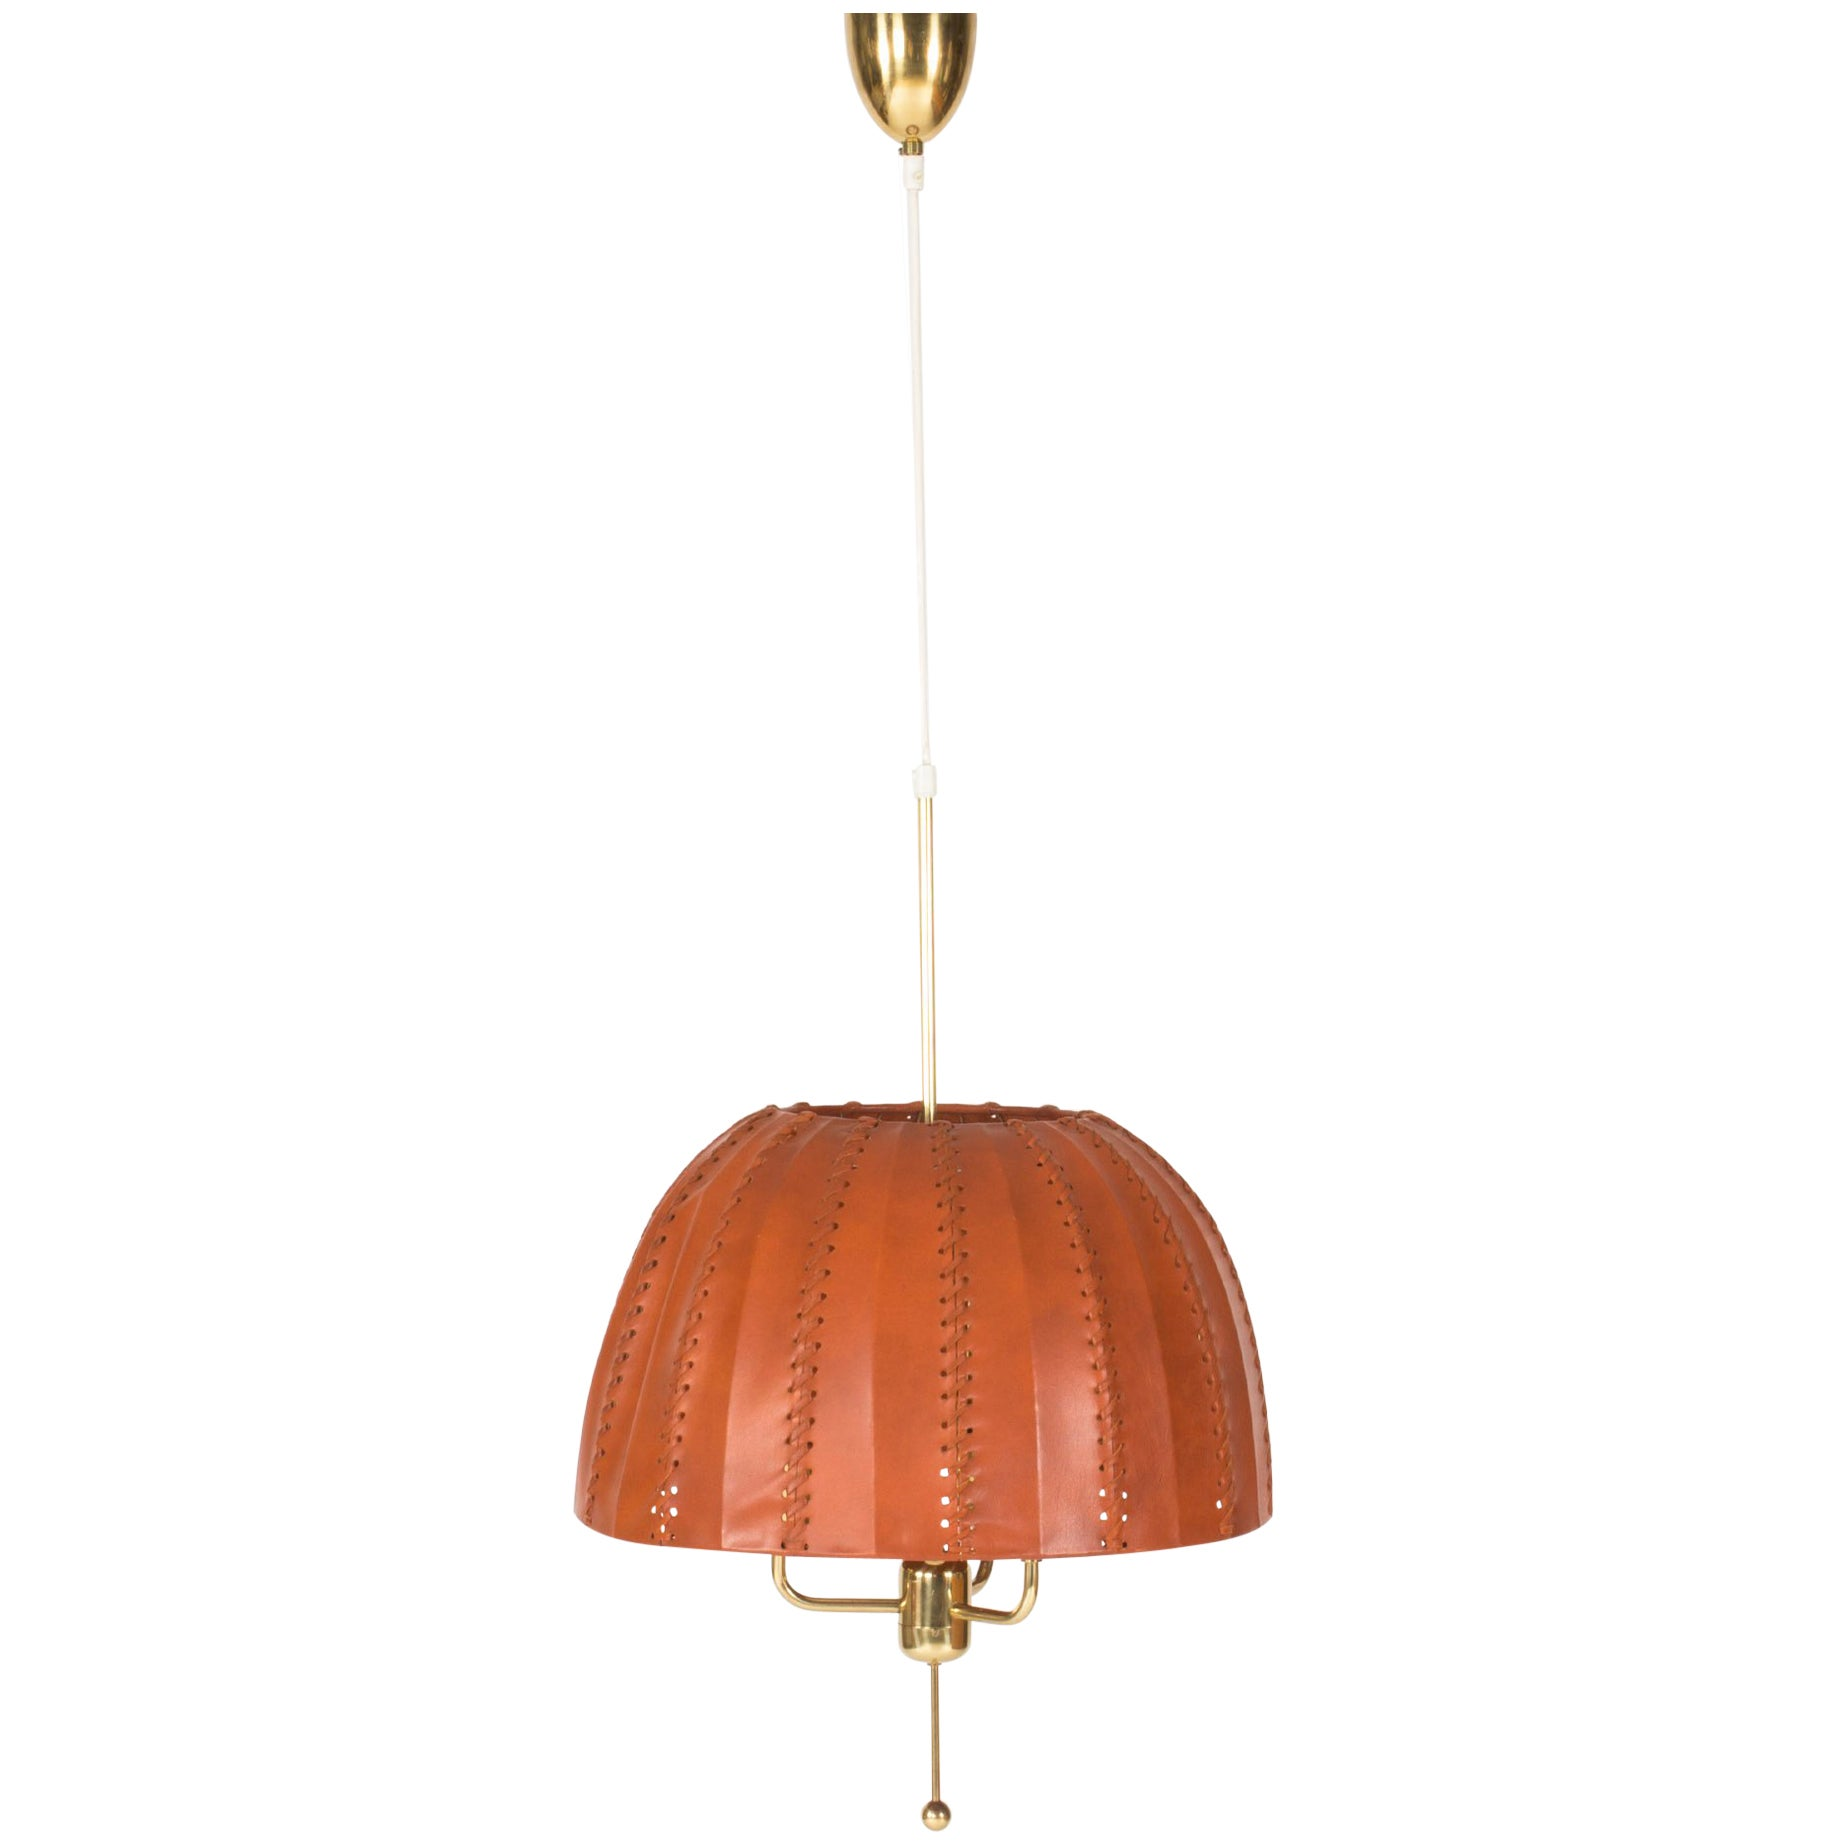 Leather and Brass Pendant Lamp by Hans-Agne Jakobsson